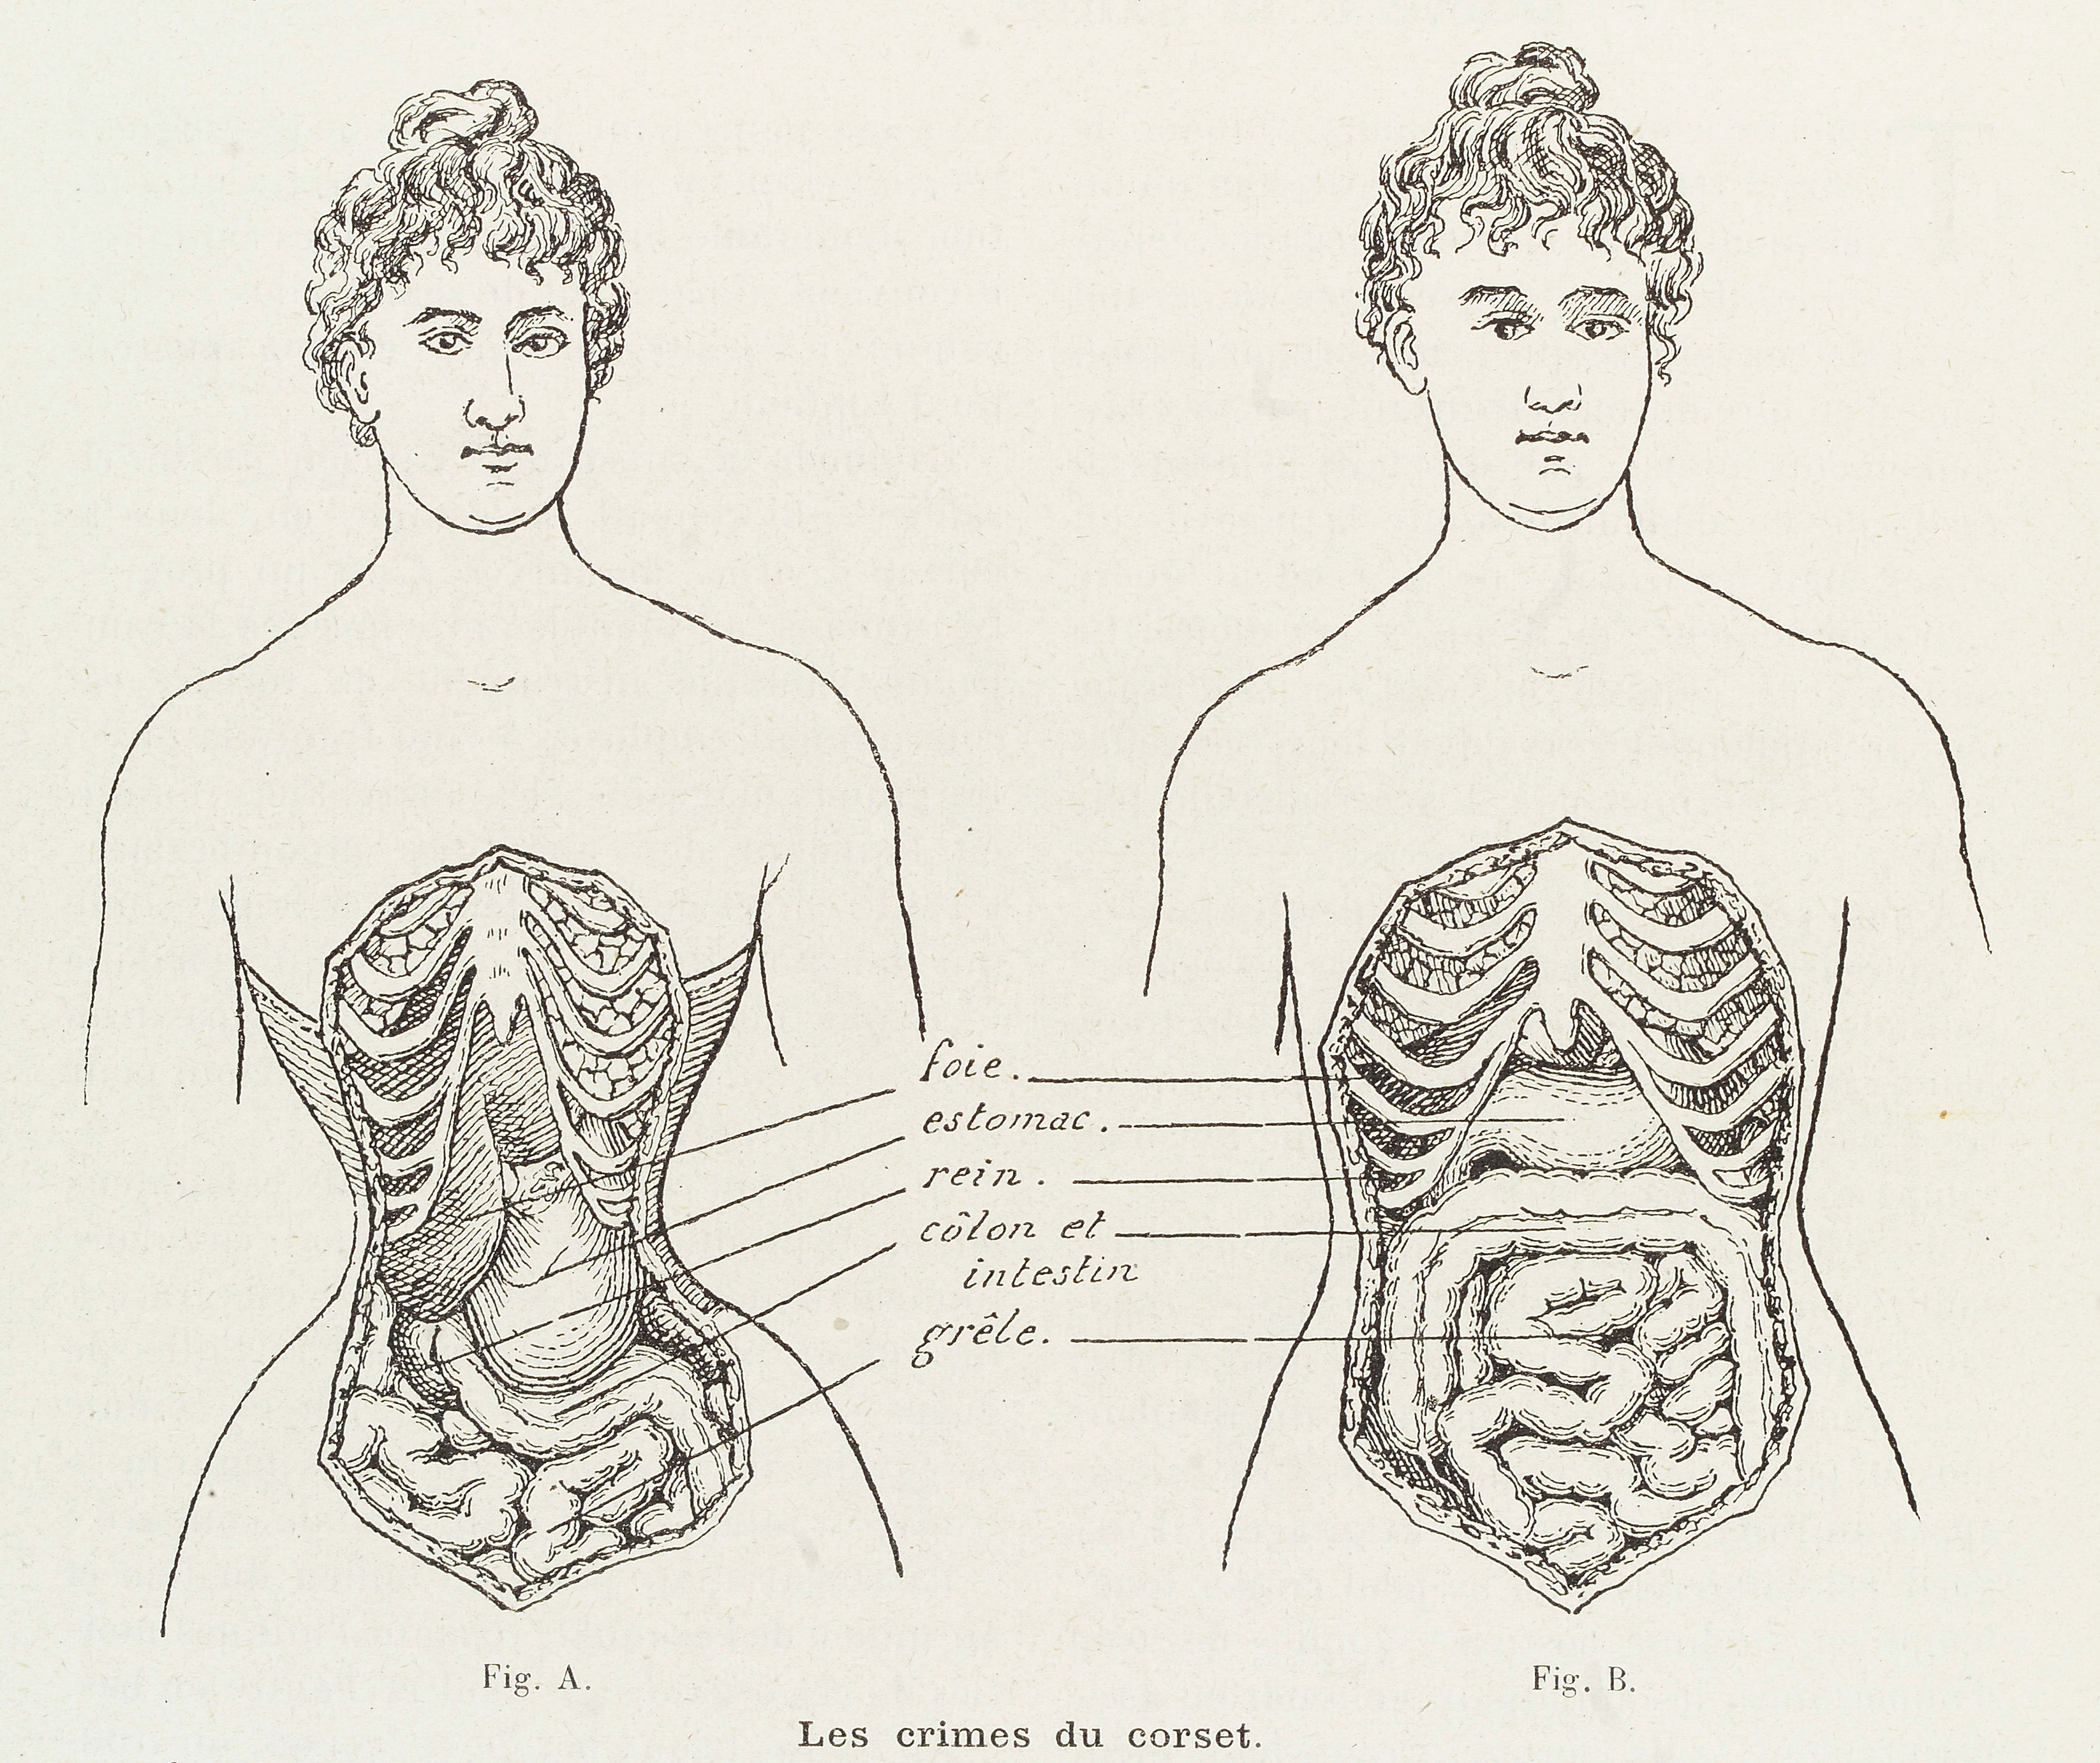 This image shows the crimes of corset and how it cripples and restricts the bodily organs in women.